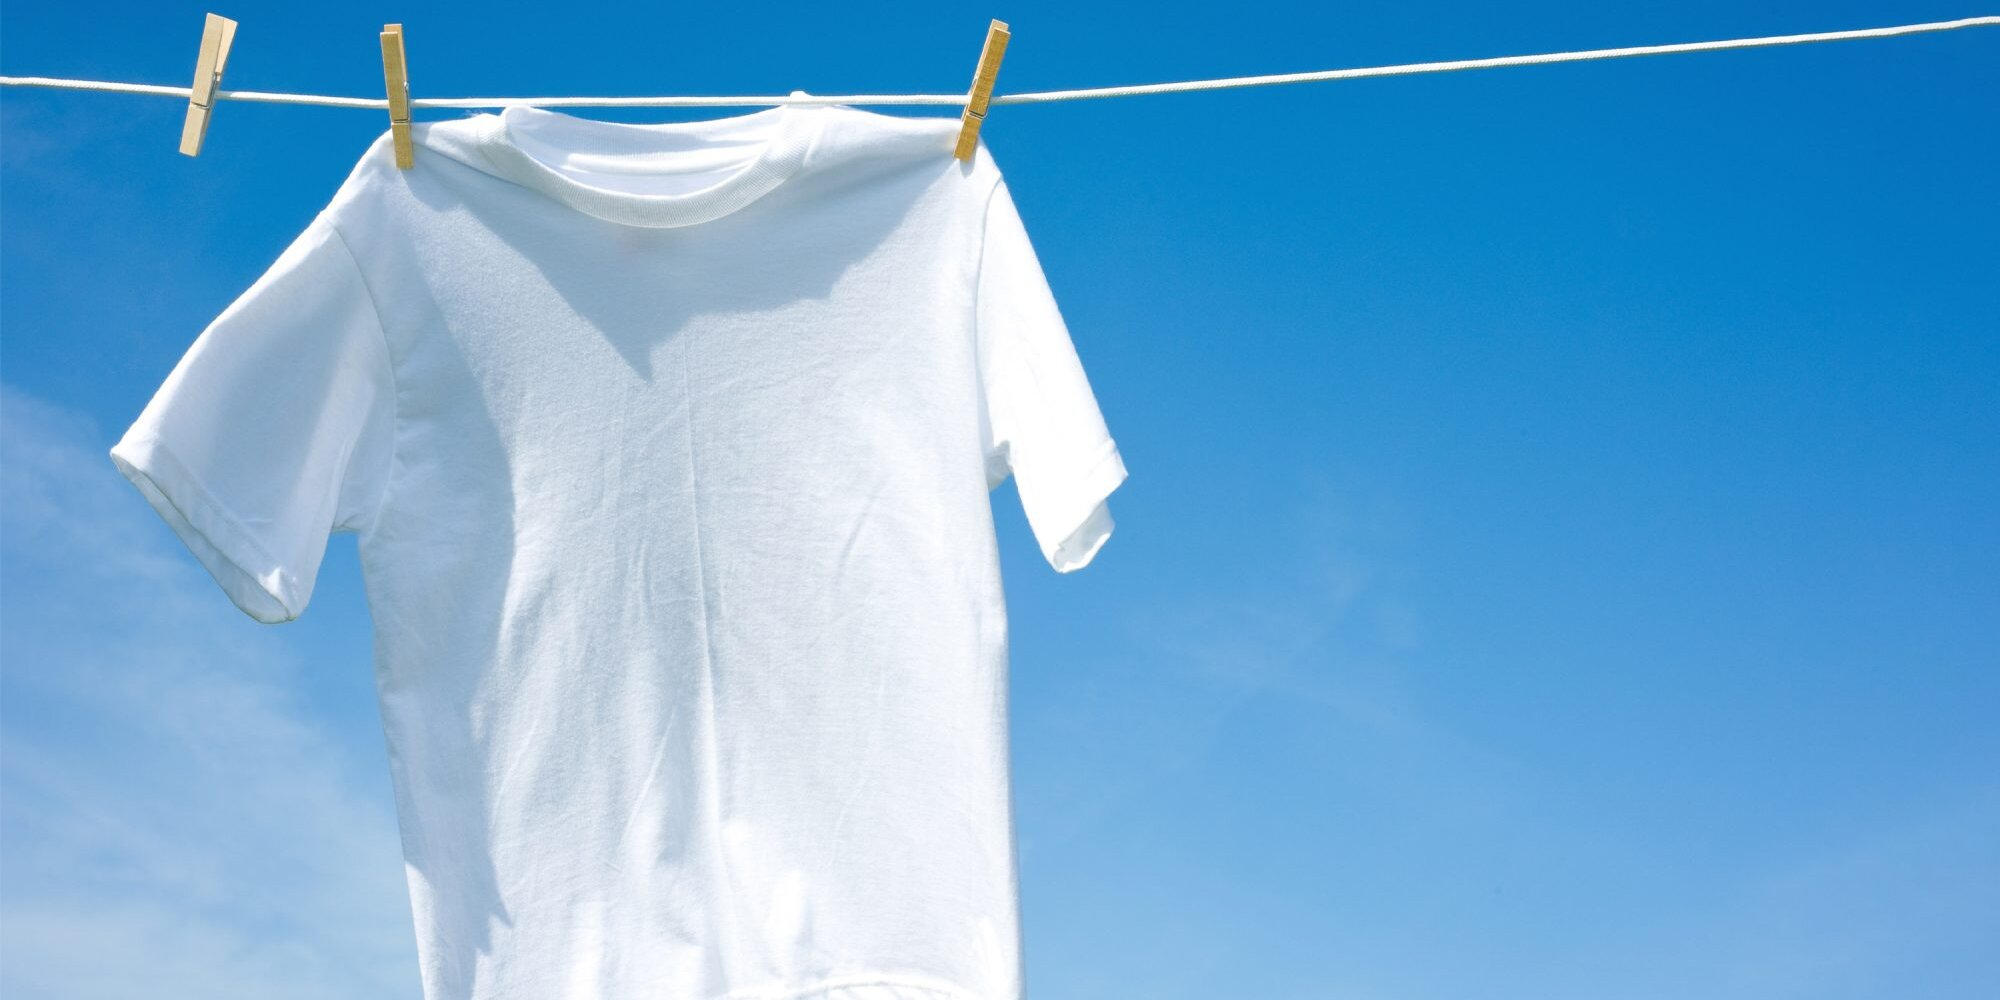 10 Ways to Whiten Laundry Without Bleach